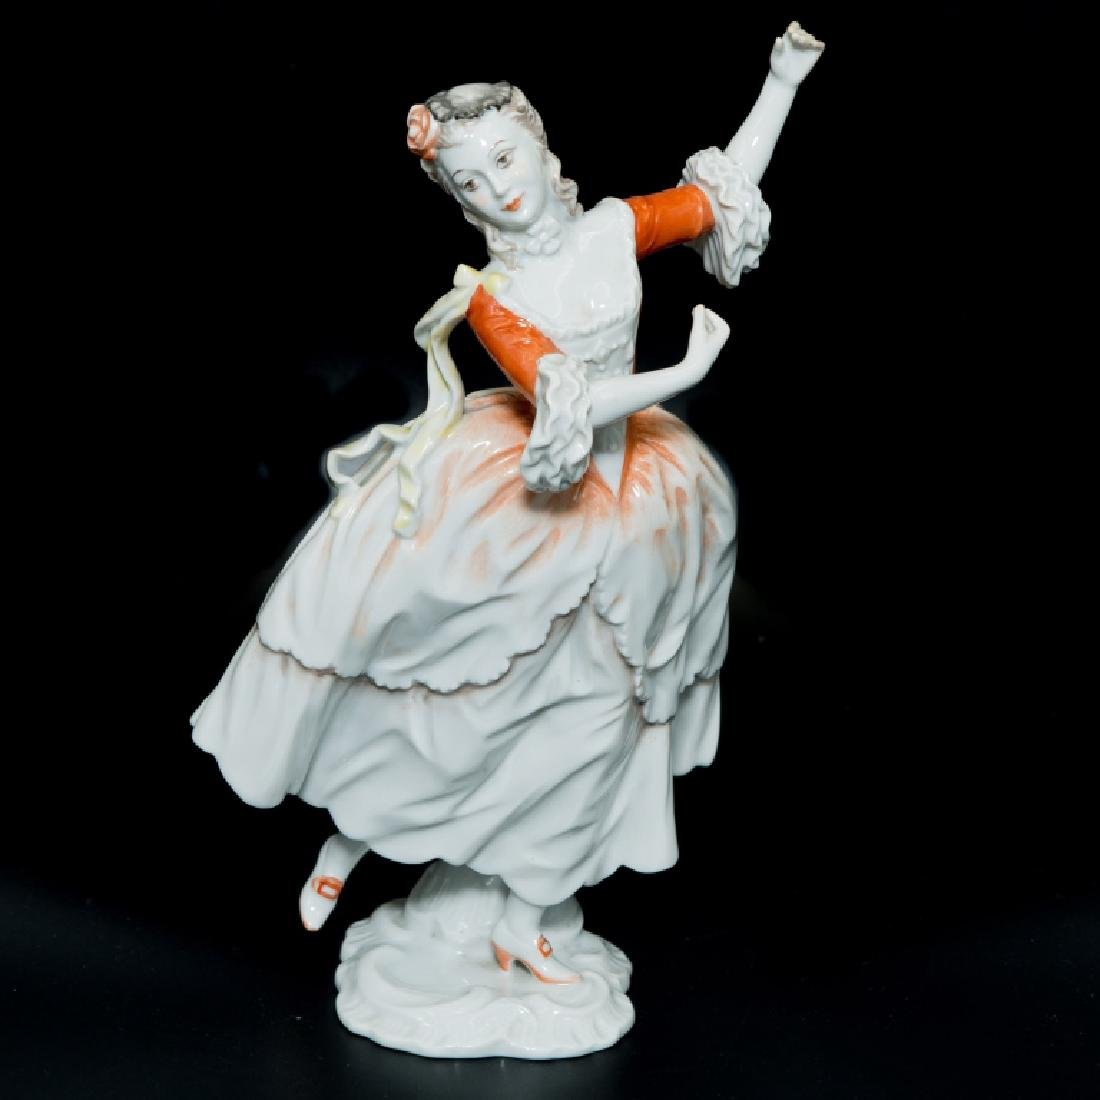 Rosenthal Rococo Girl Dancing Orange White Dress